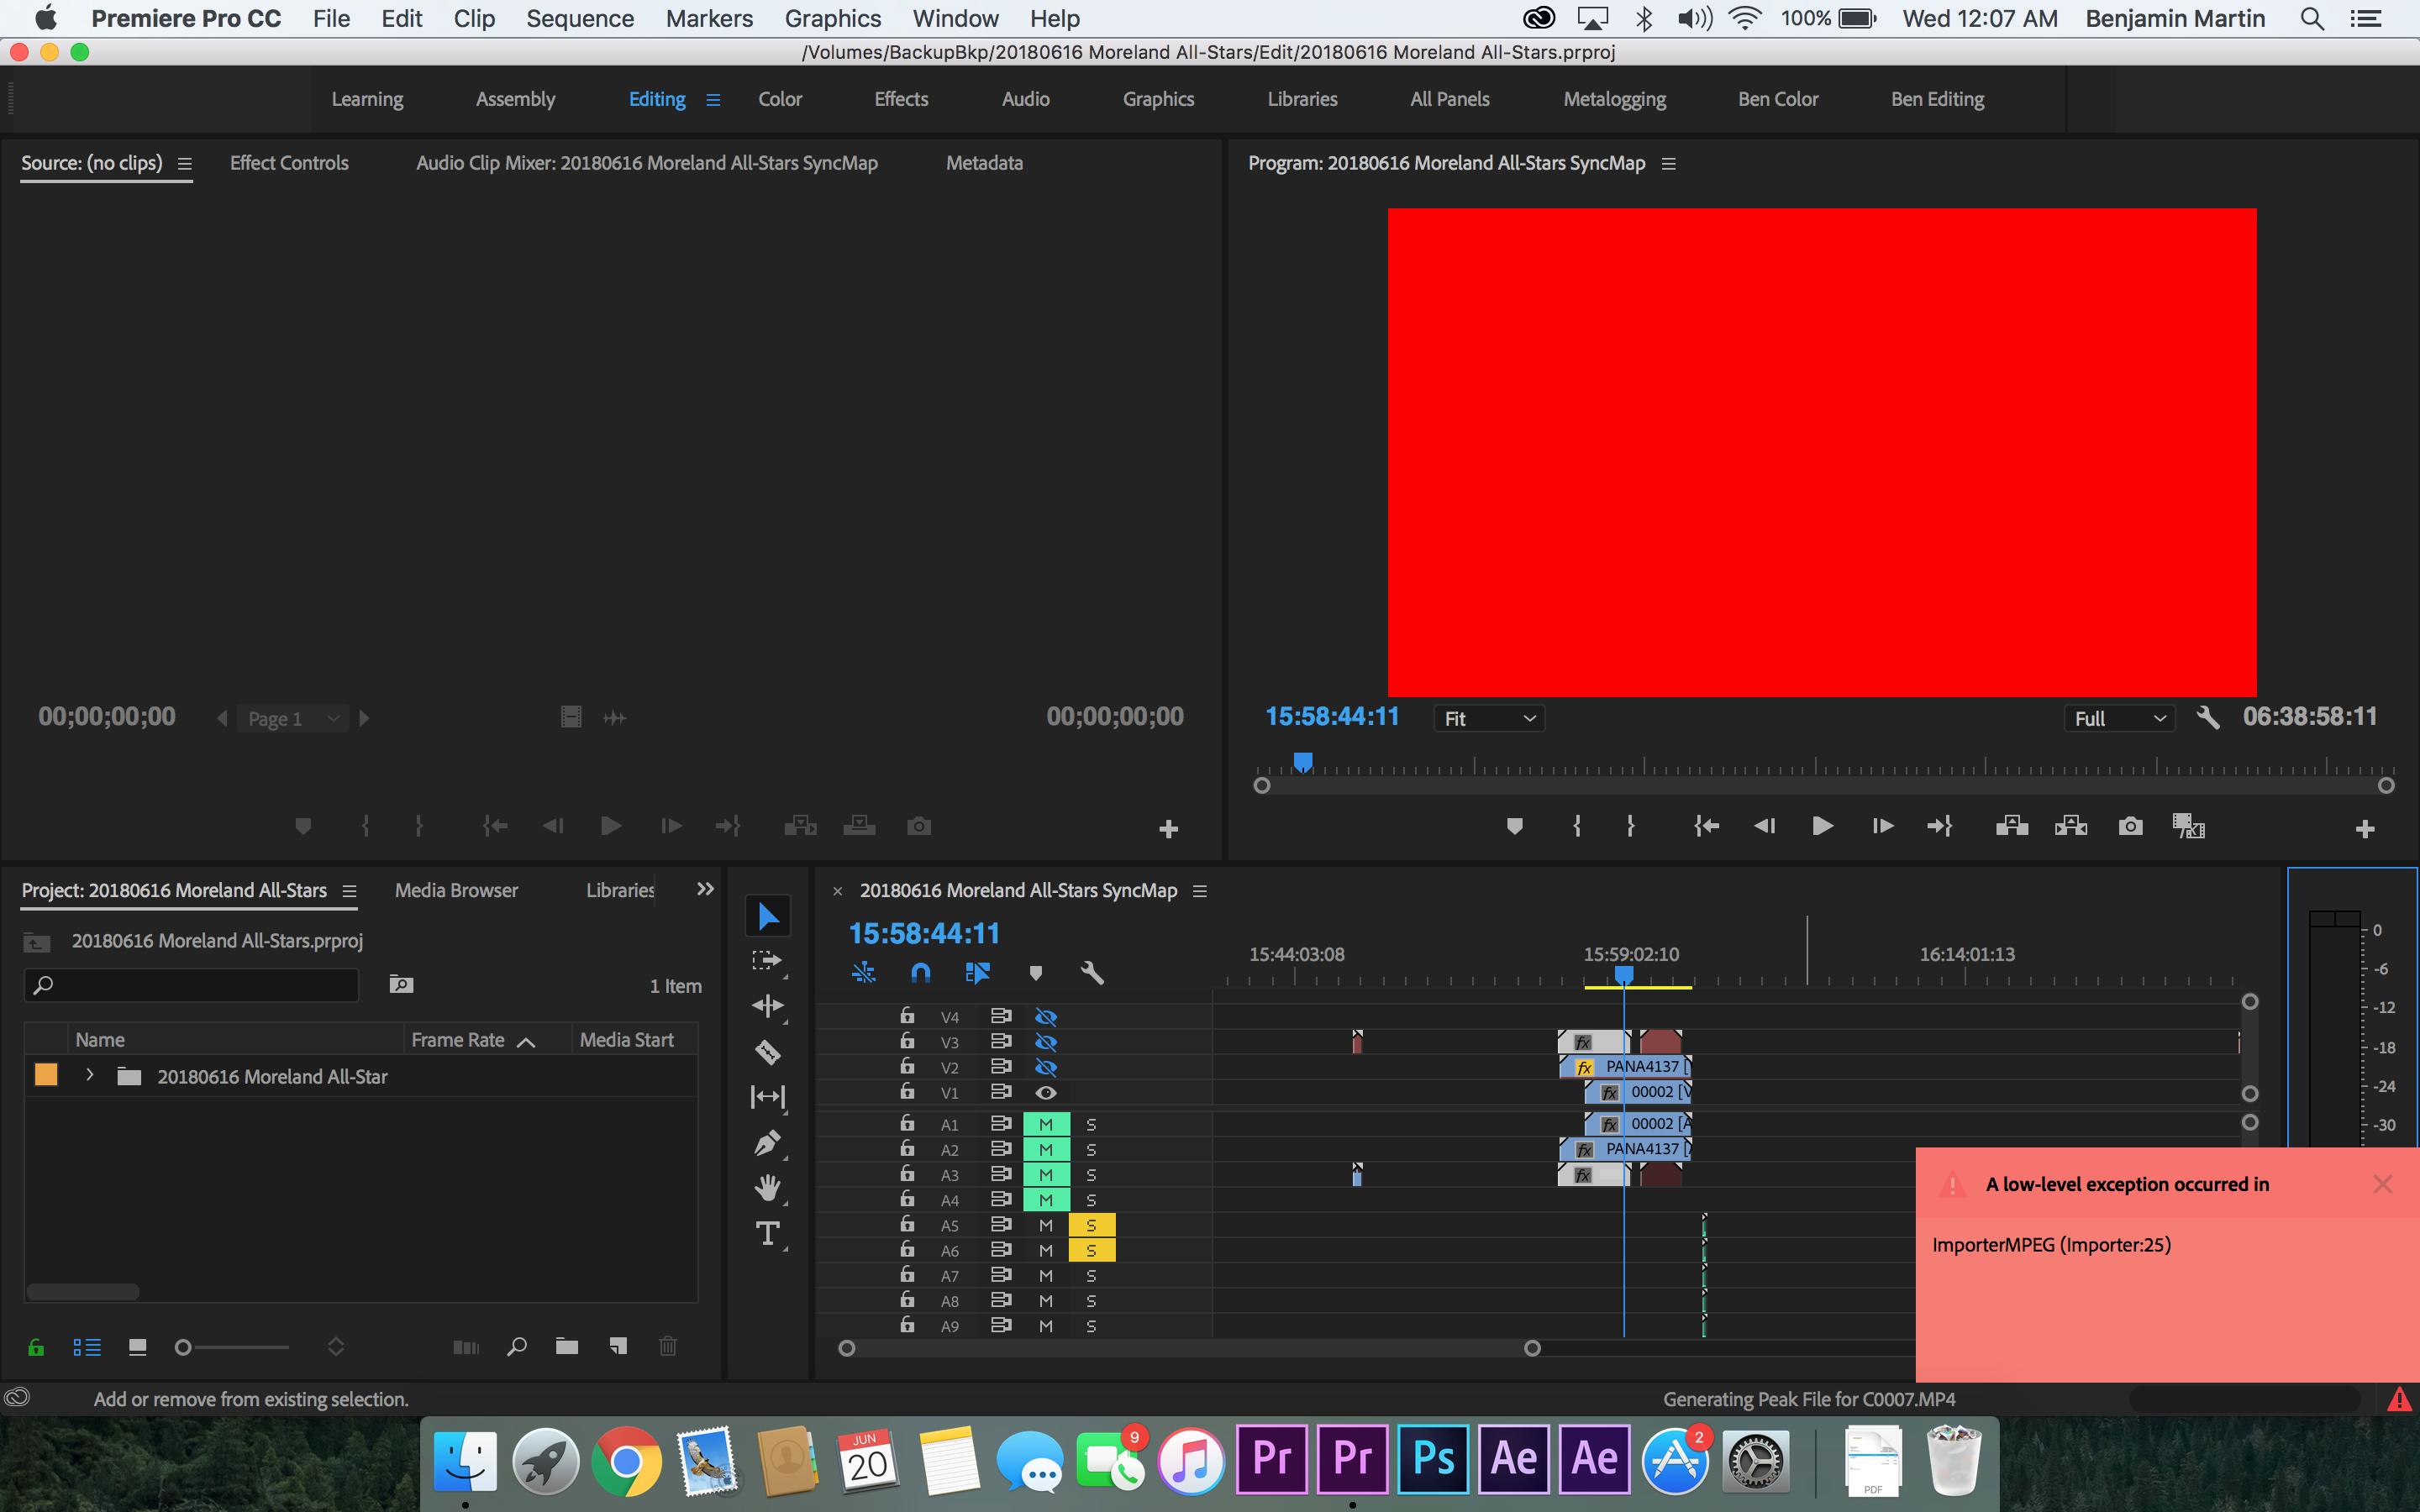 Premiere Pro red screen/glitch ver 12 1 1 - Adobe Support